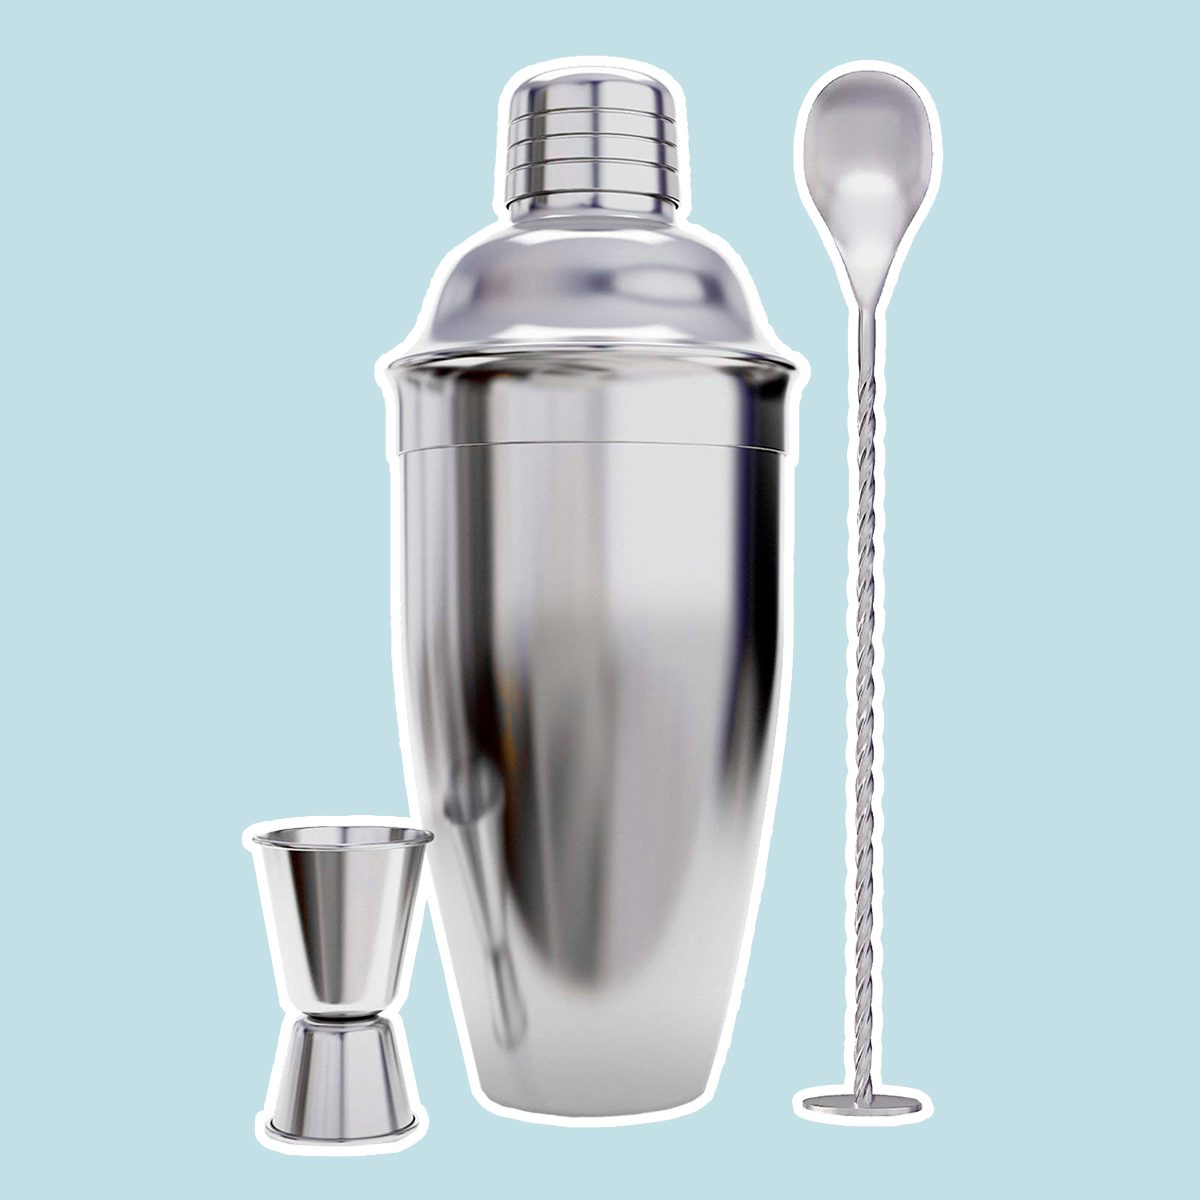 24 Ounce Cocktail Shaker Bar Set with Accessories - Martini Kit with Measuring Jigger and Mixing Spoon plus Drink Recipes Booklet - Professional Stainless...